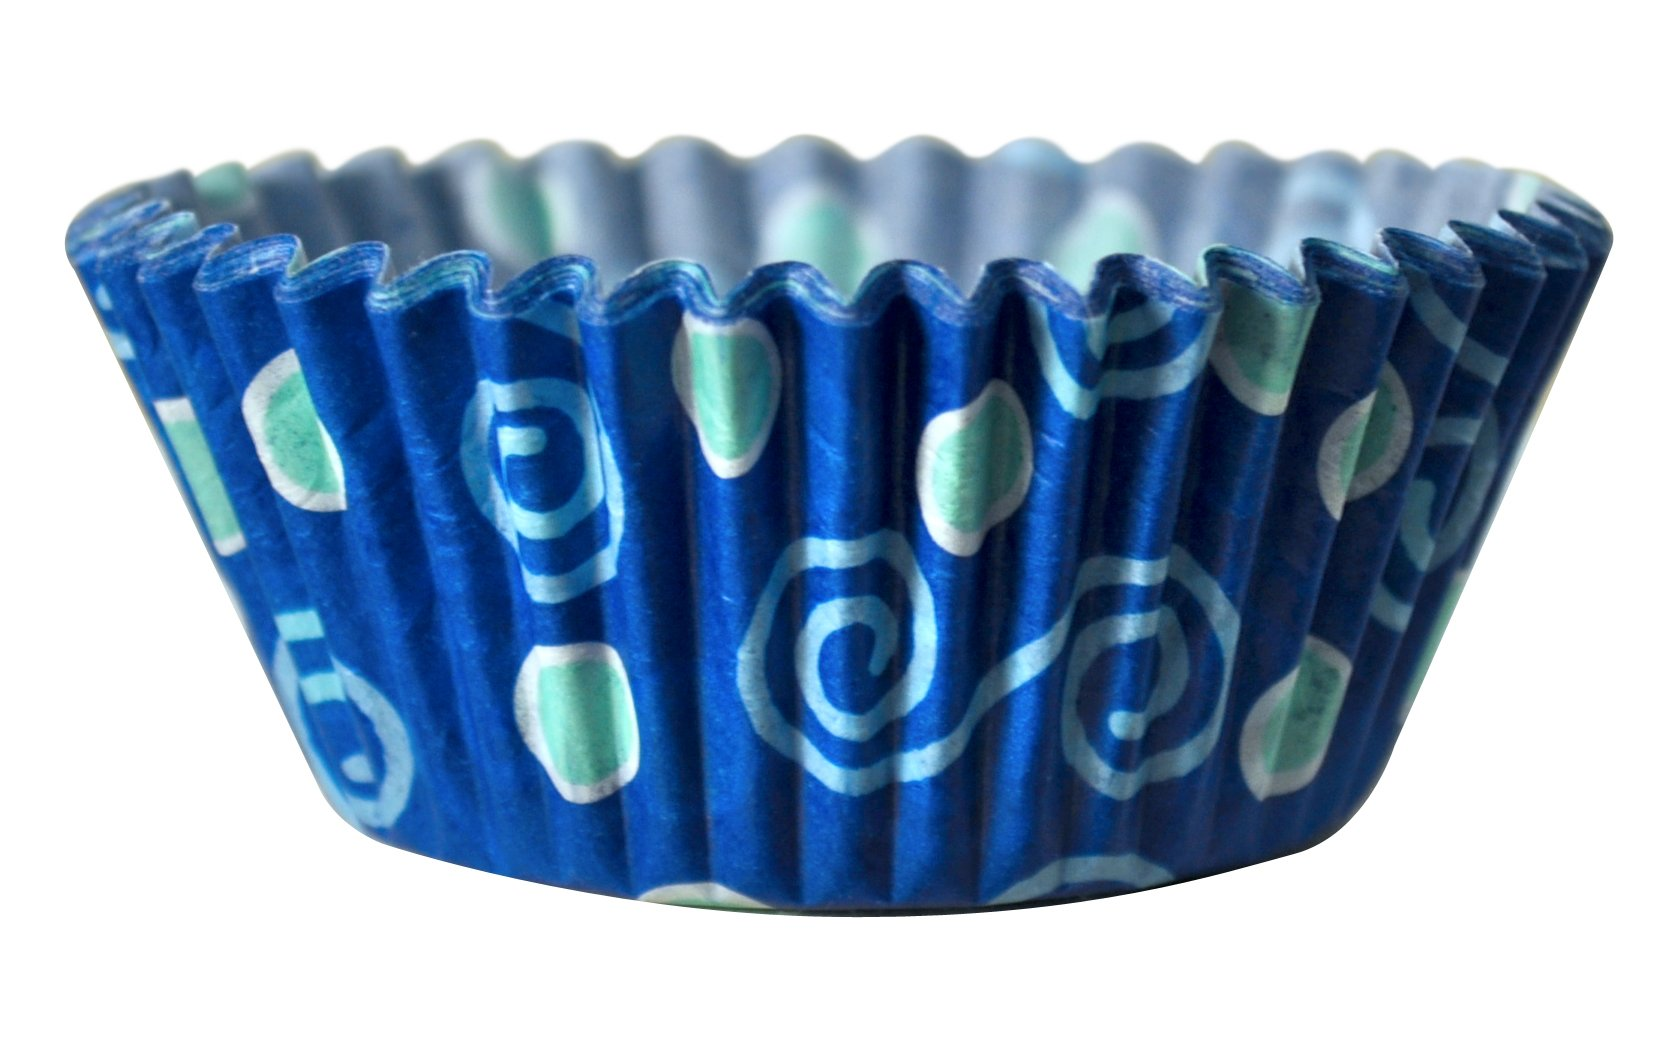 Reynolds Baking Cups, Party Variety Pack, 864 Cups, 24 Count by Reynolds (Image #3)